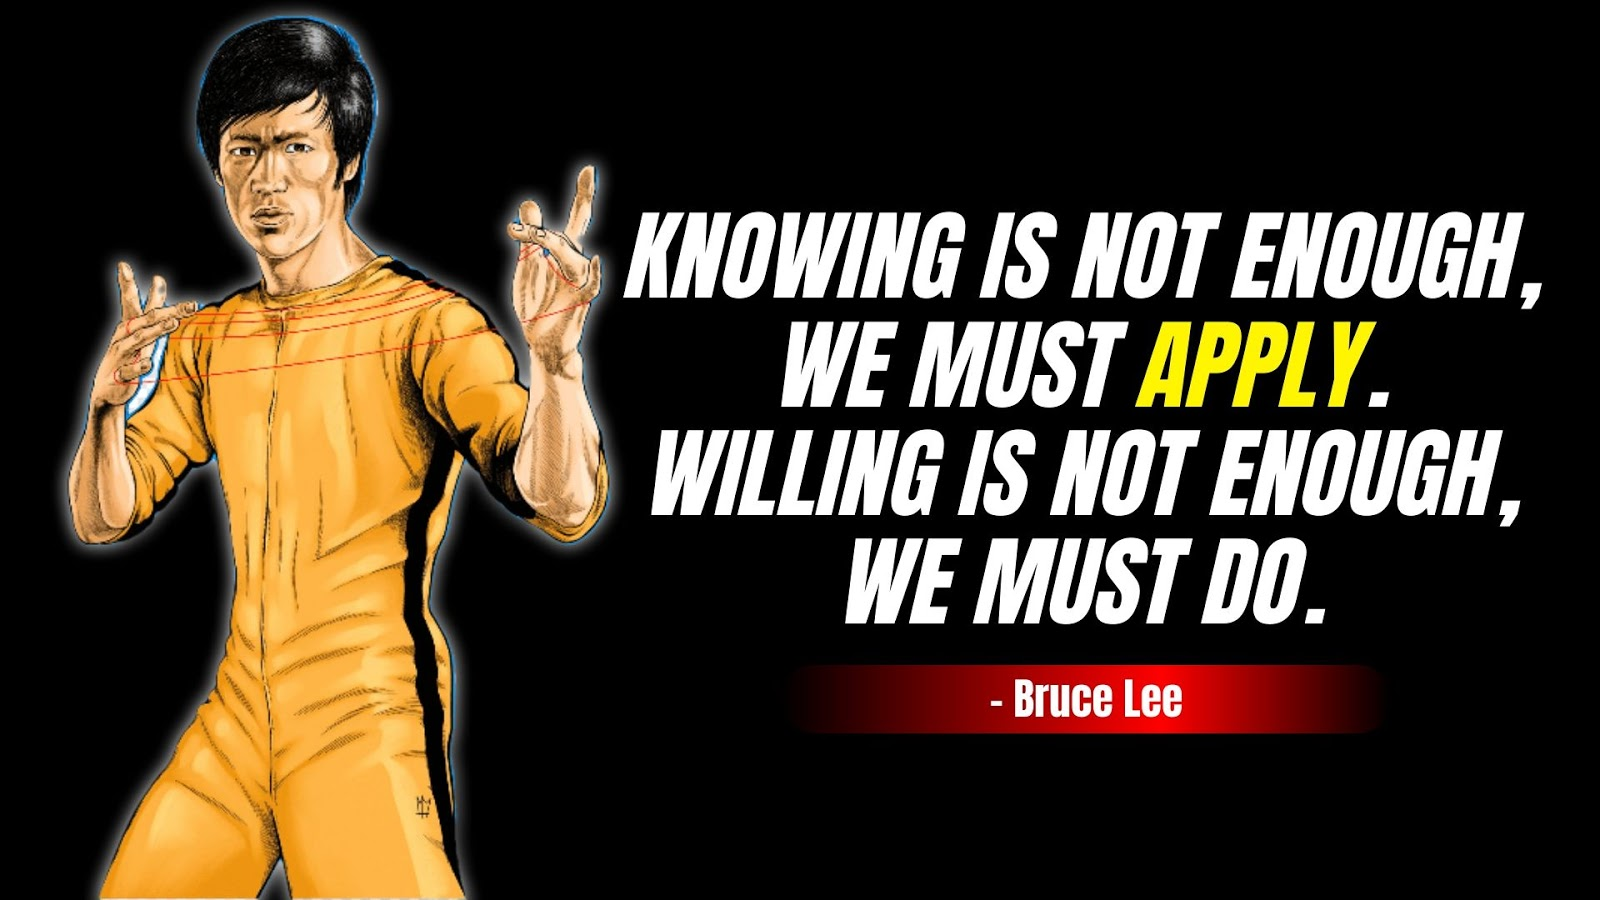 Bruce Lee Quotes about hardwork